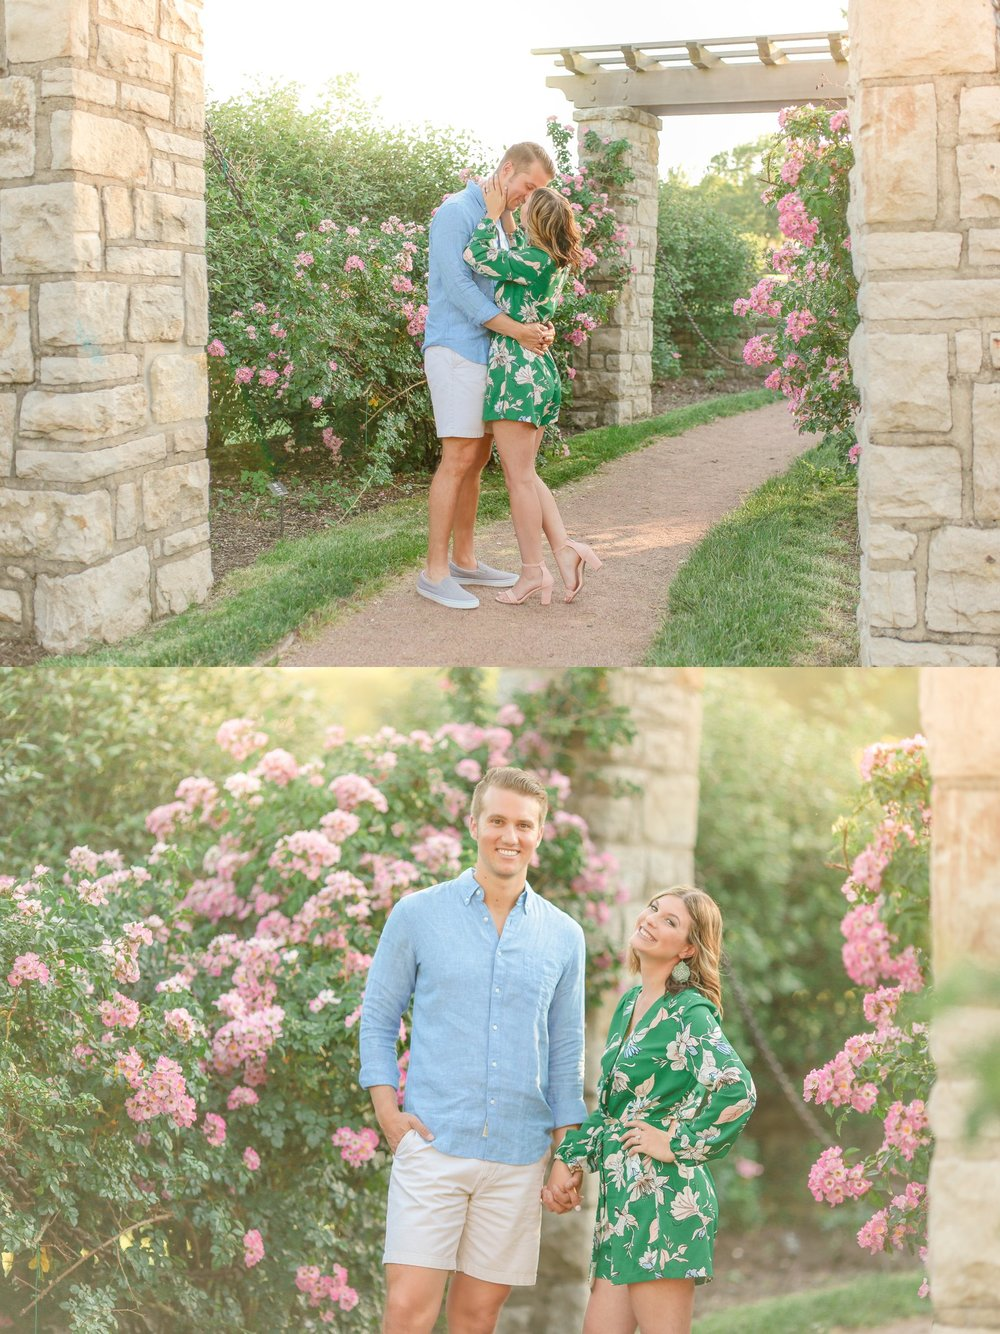 wedding_photographer_Missouri_Destination_elope_intimate_Saint_James_MO_Missouri_KansasCity_Jeff_City_Jefferson_Columbia_Engagement_Photos_Pictures_Session_Best_Videographer_0376.jpg